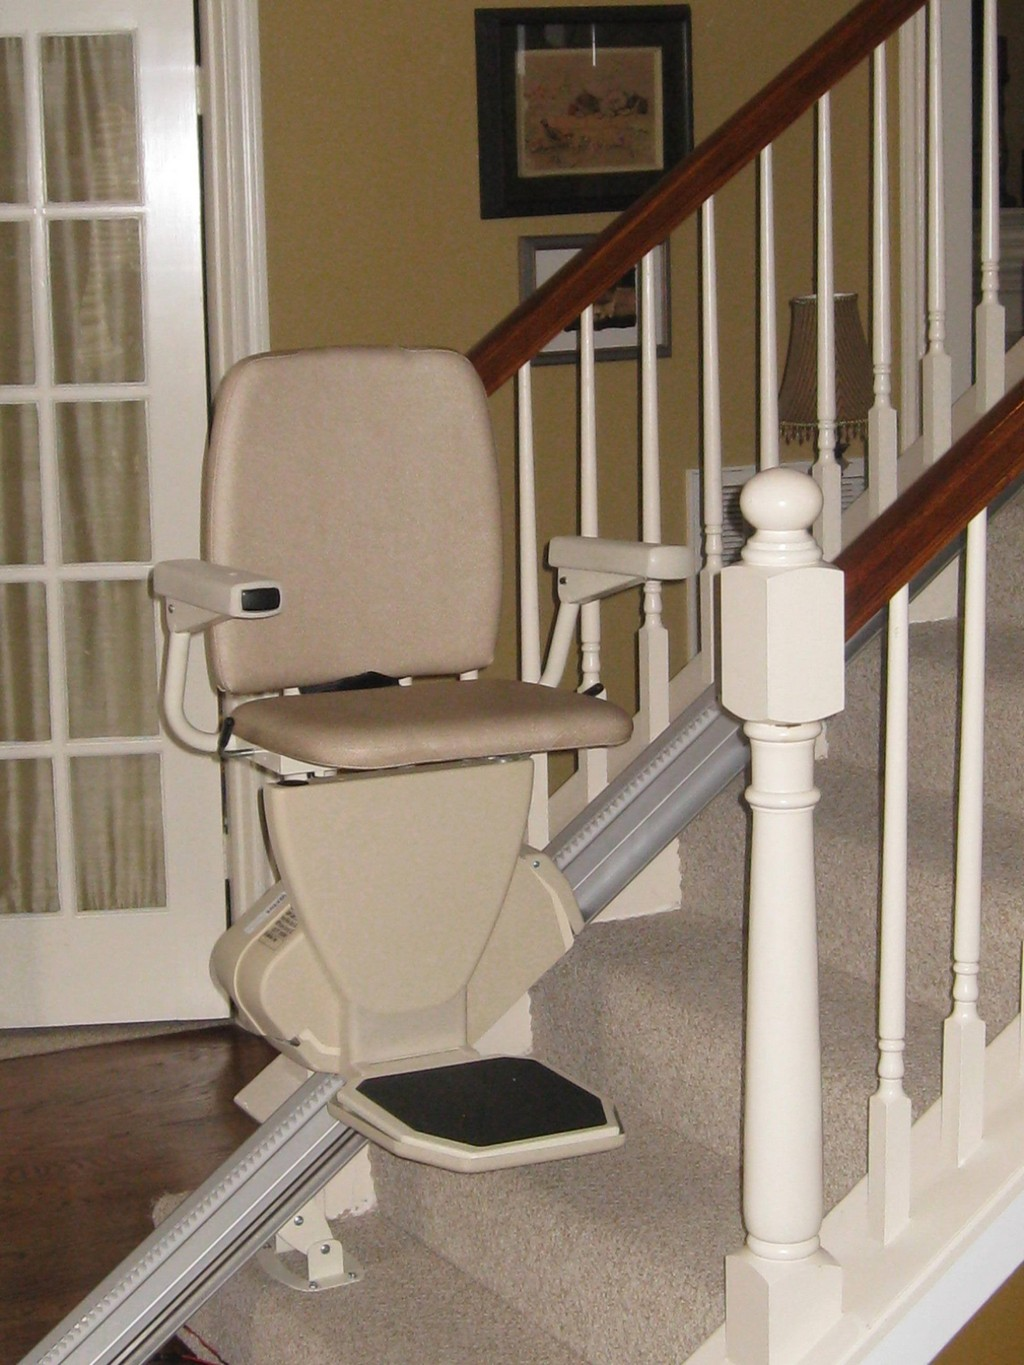 ameriglide stair lift, disabled stair lift, used stair lift, excel stairlift